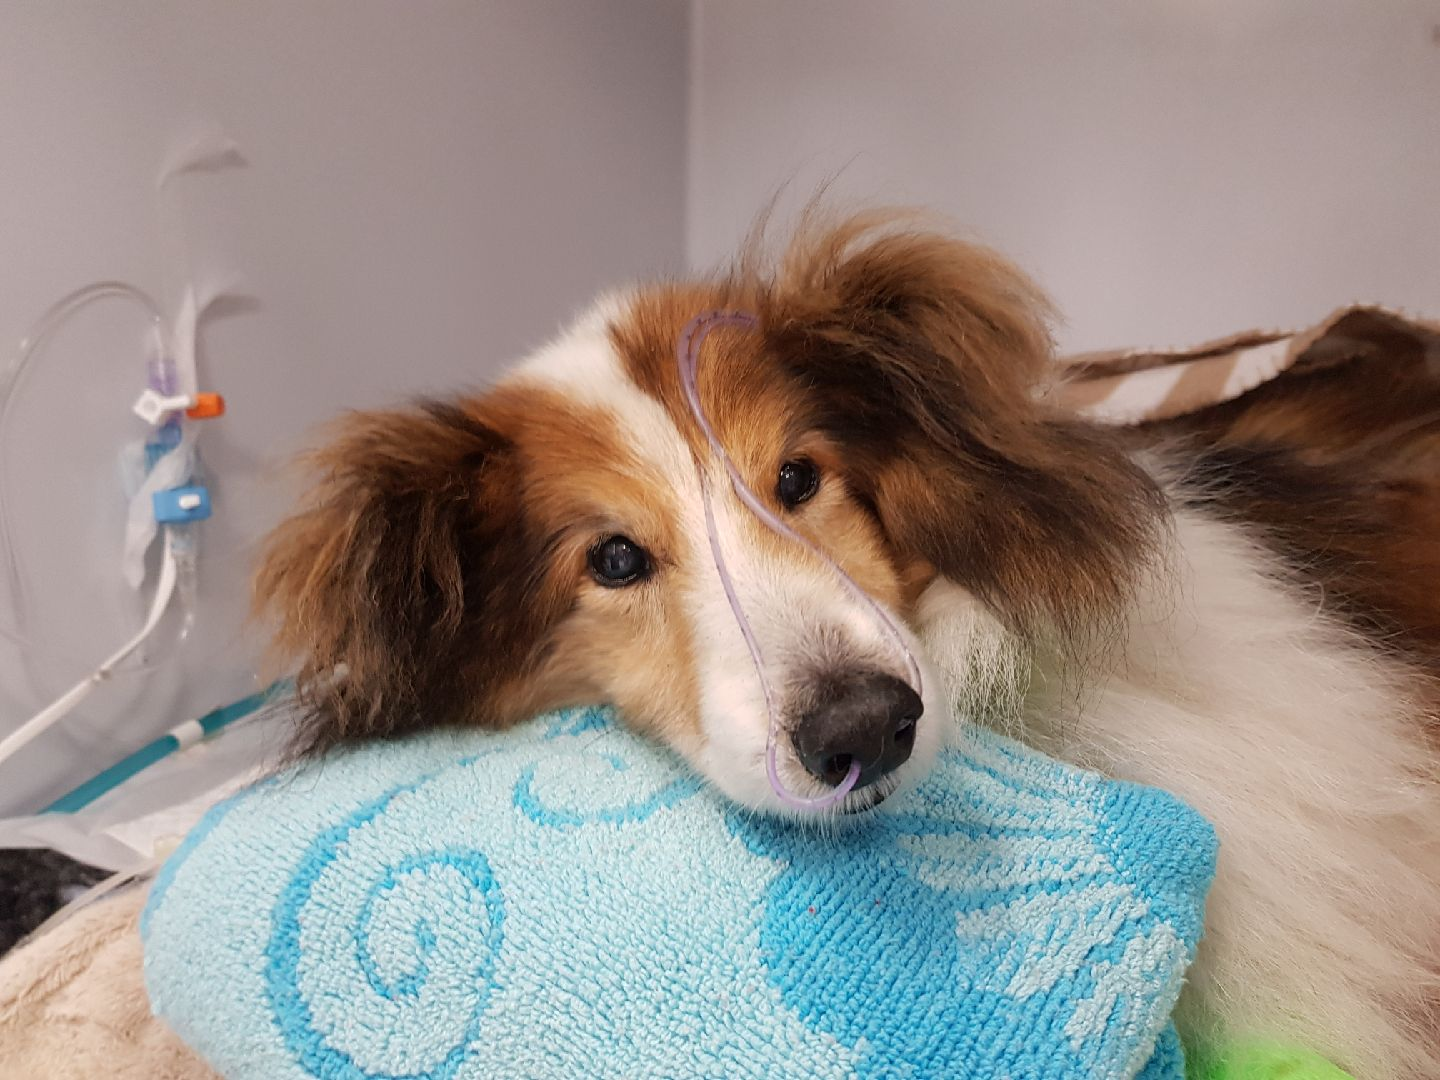 Shelty lying on a pillow in cage at the vet's